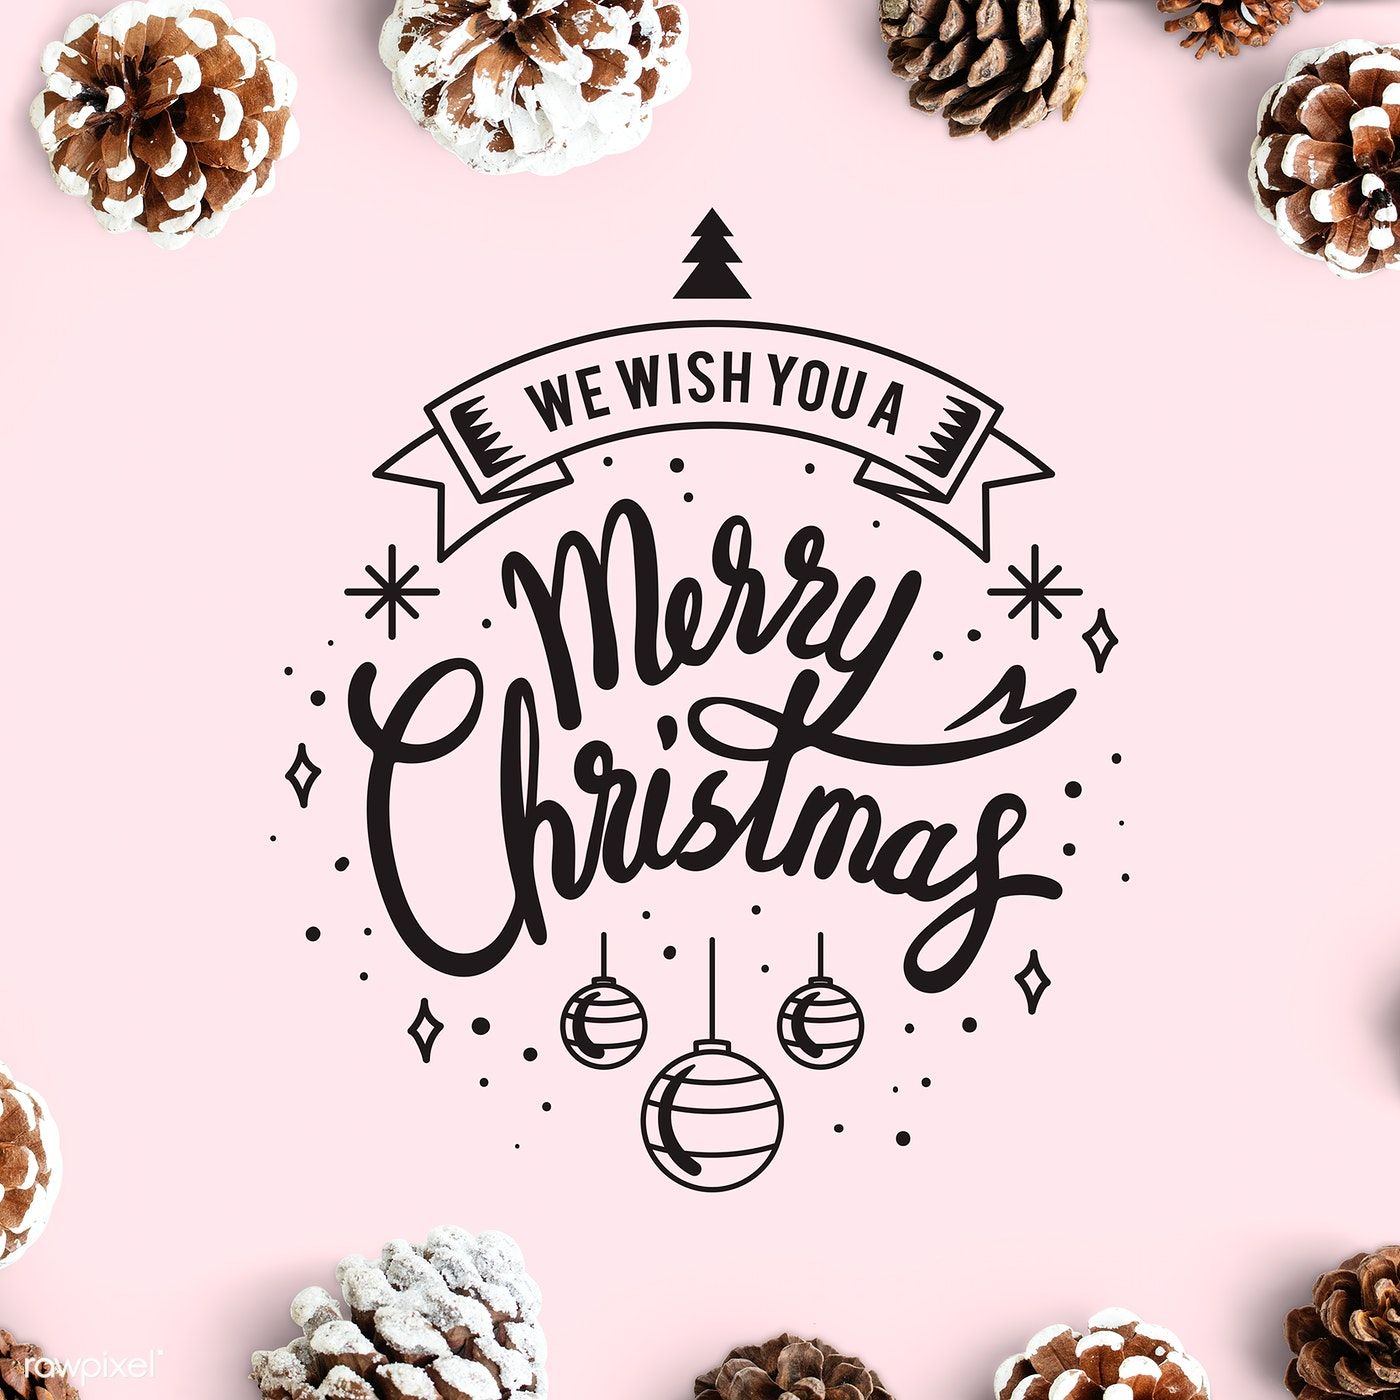 We Wish You A Merry Christmas Card Mockup Premium Image By Rawpixel Com Merry Christmas Card Wish You Merry Christmas Merry Christmas Calligraphy